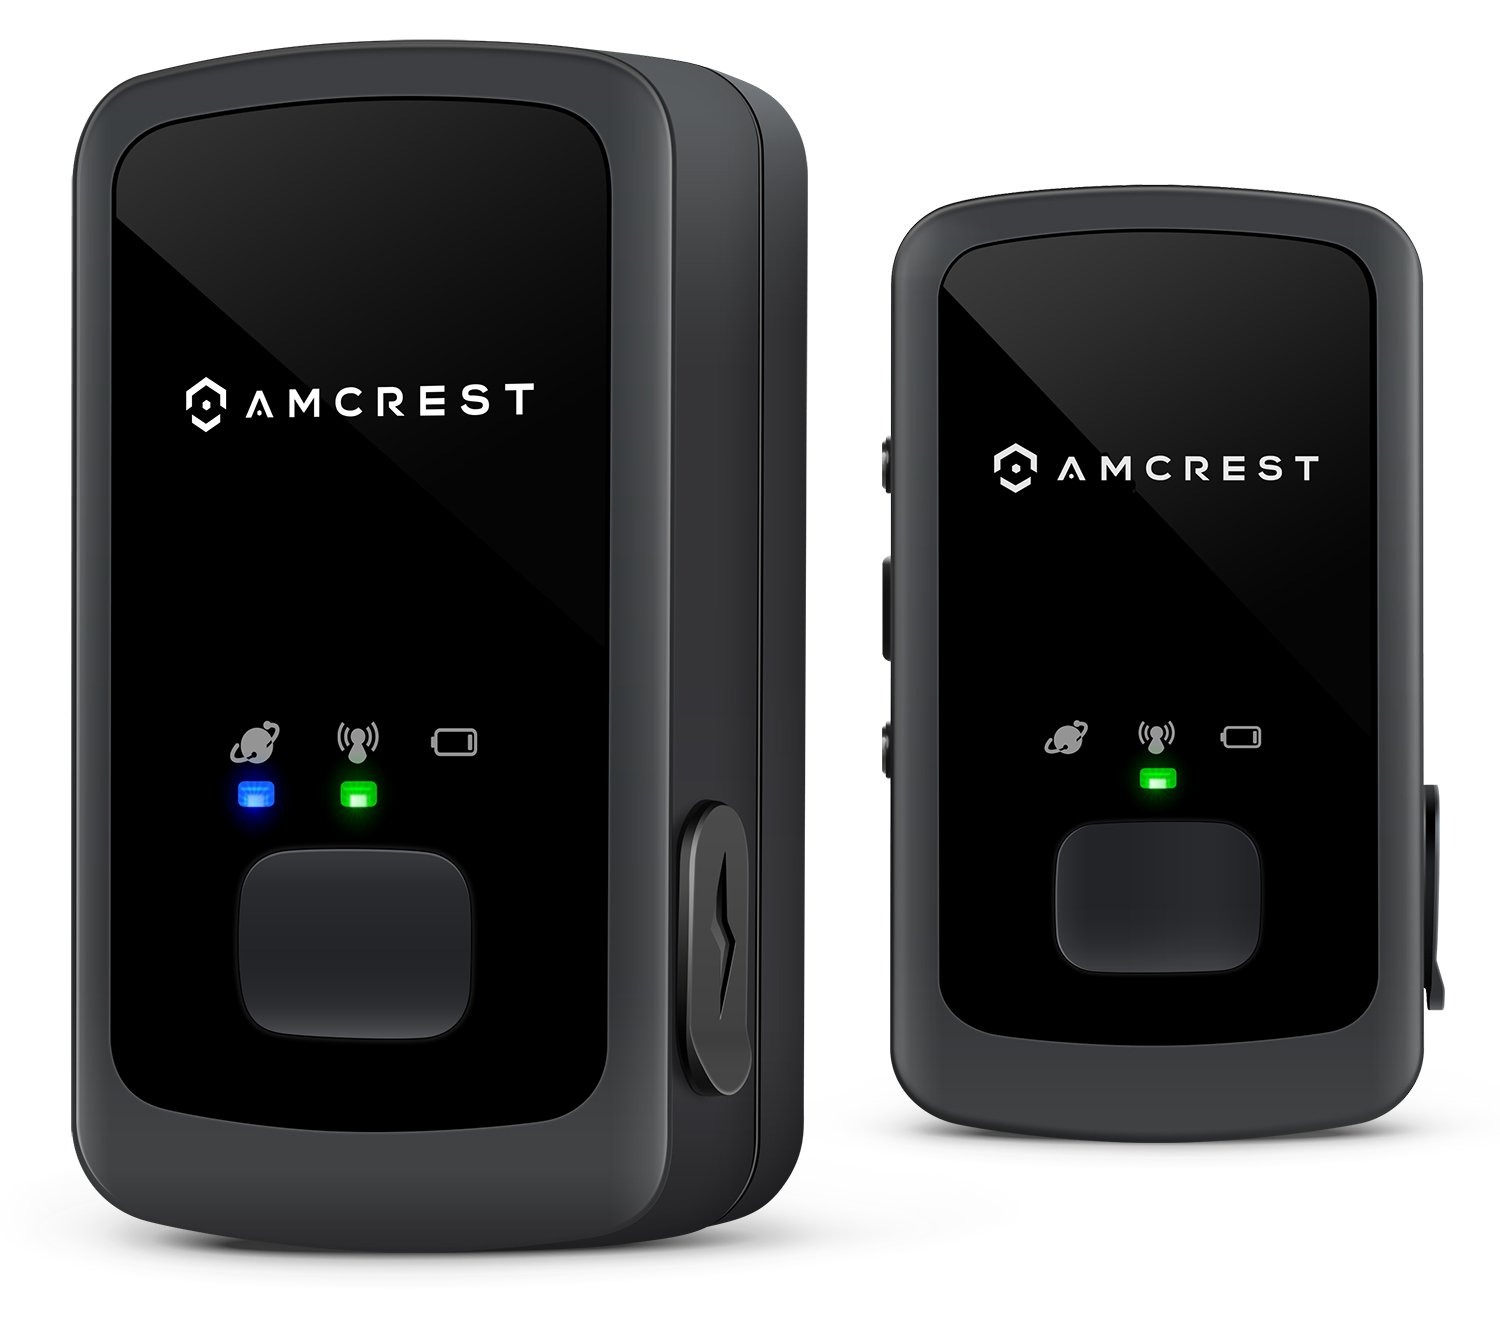 2-Pack Amcrest AM-GL300 V2 (Upgraded GSM) Portable Mini Real-Time GPS Tracker - Unlimited Text Message / Email Alerts, Geo-Fencing, 7-10 Day Battery, No Contracts by Amcrest